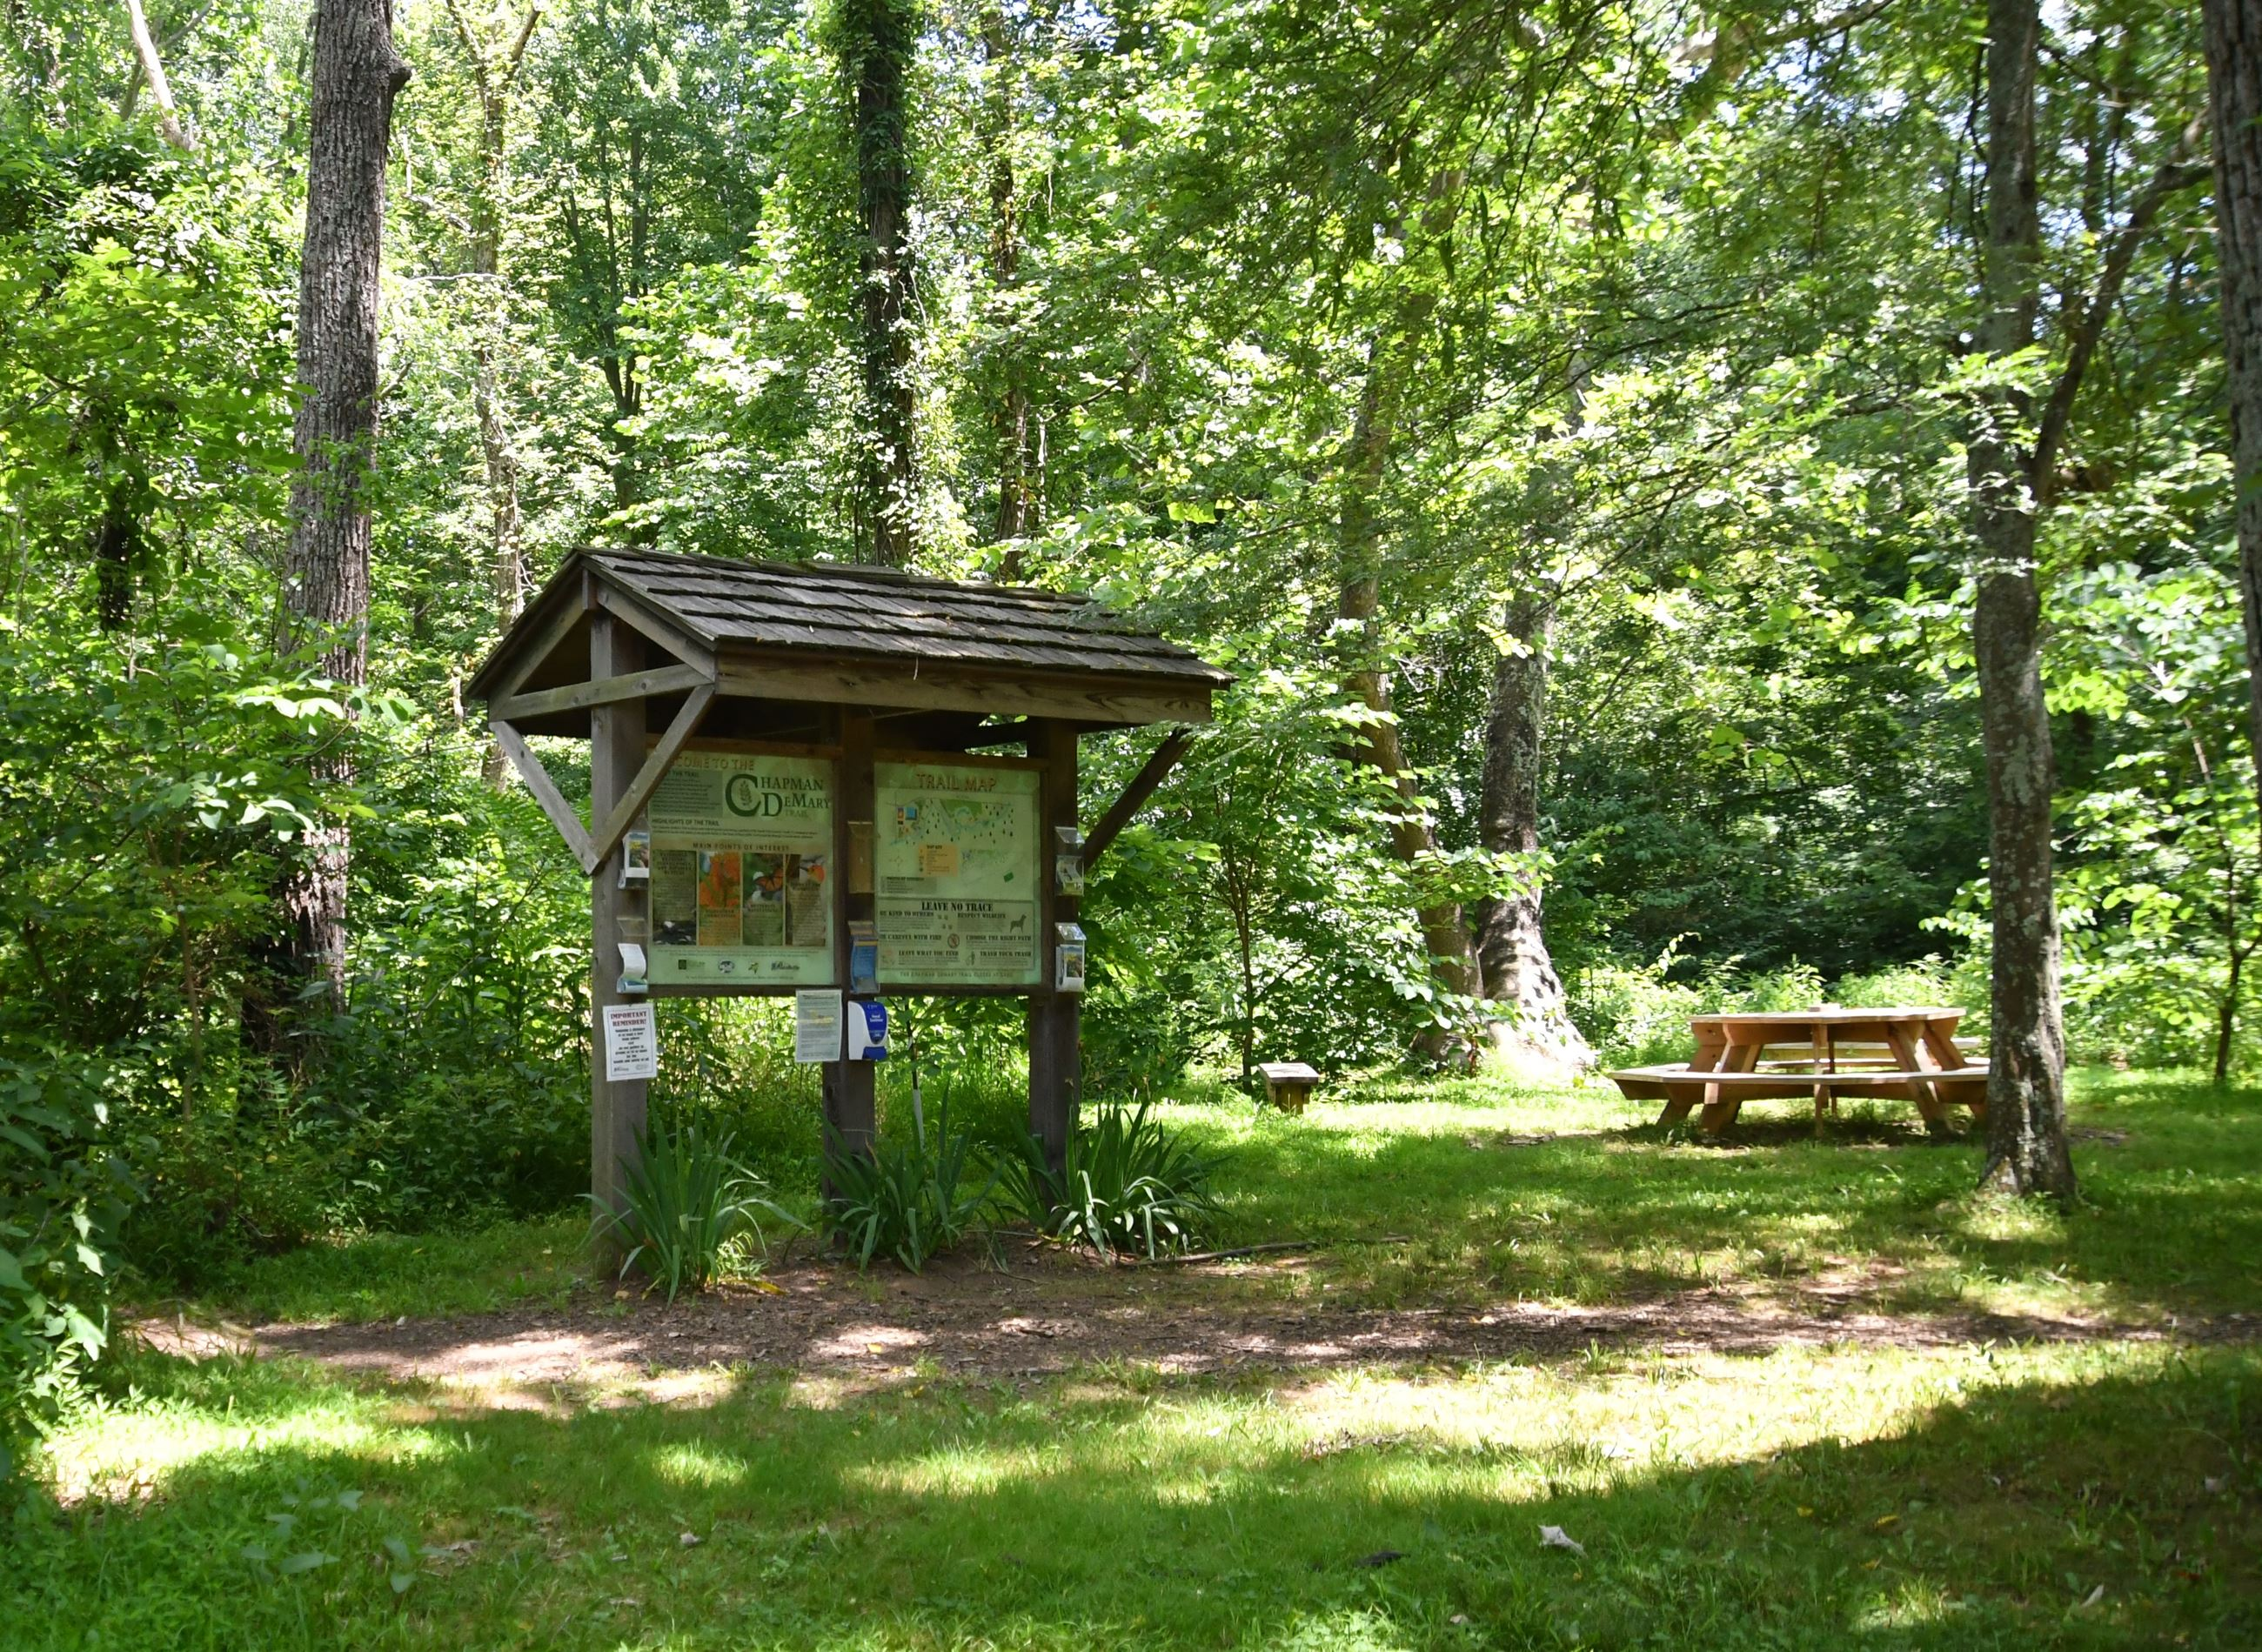 outdoor classroom at trail 4, 7-9-20